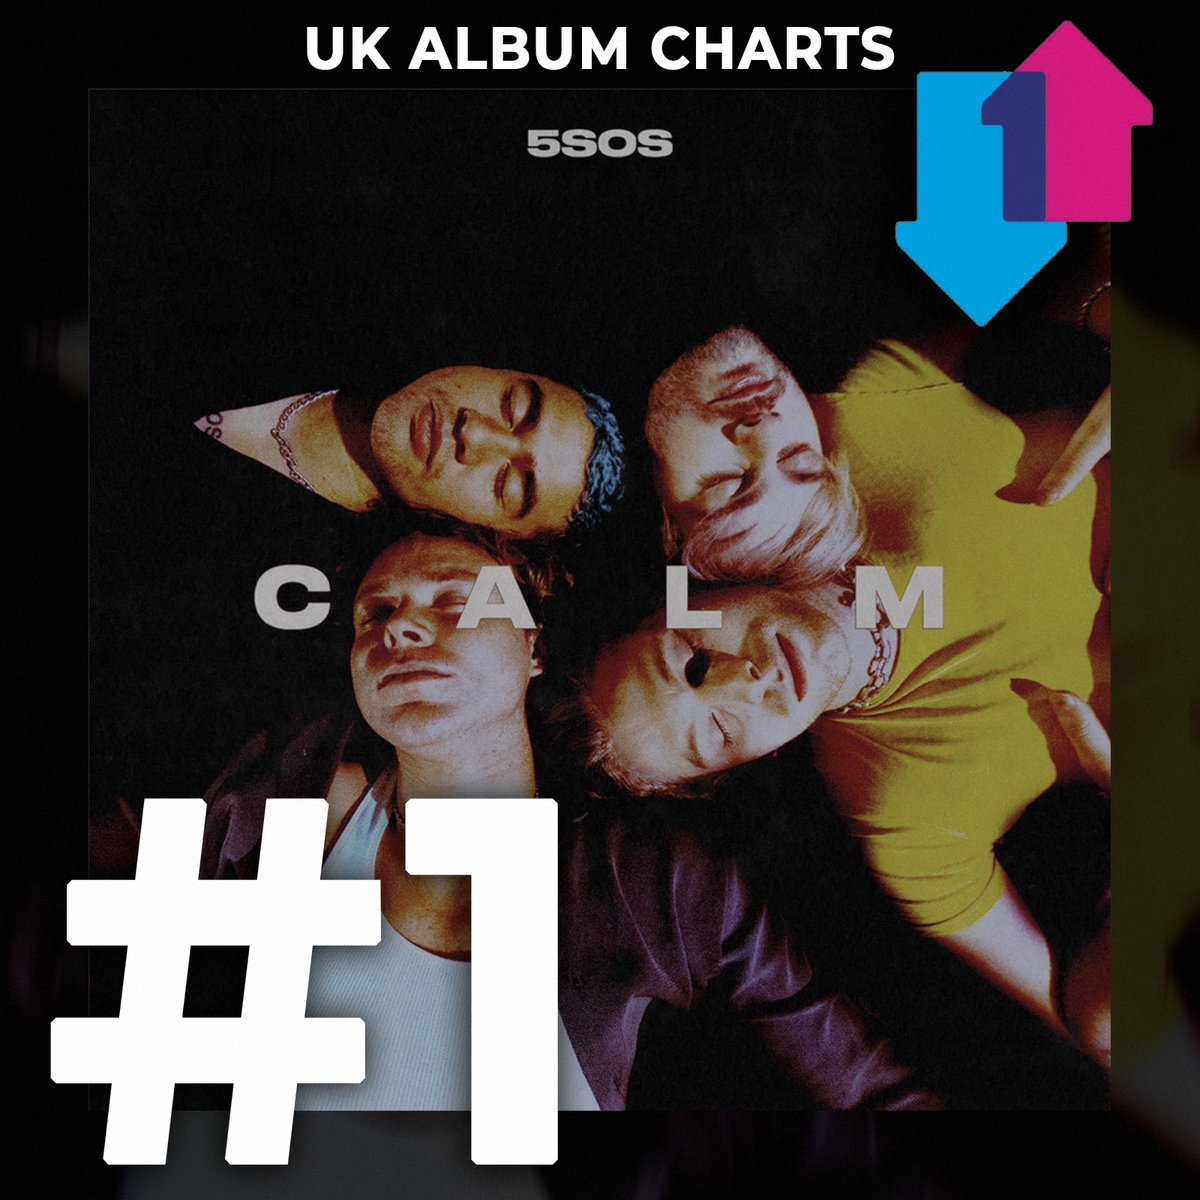 5SOS' fourth album CALM debuts at NUMBER ONE on the Official UK Album Chart! This is 5SOS' second number one album. Congratulations @5SOS! ❤️